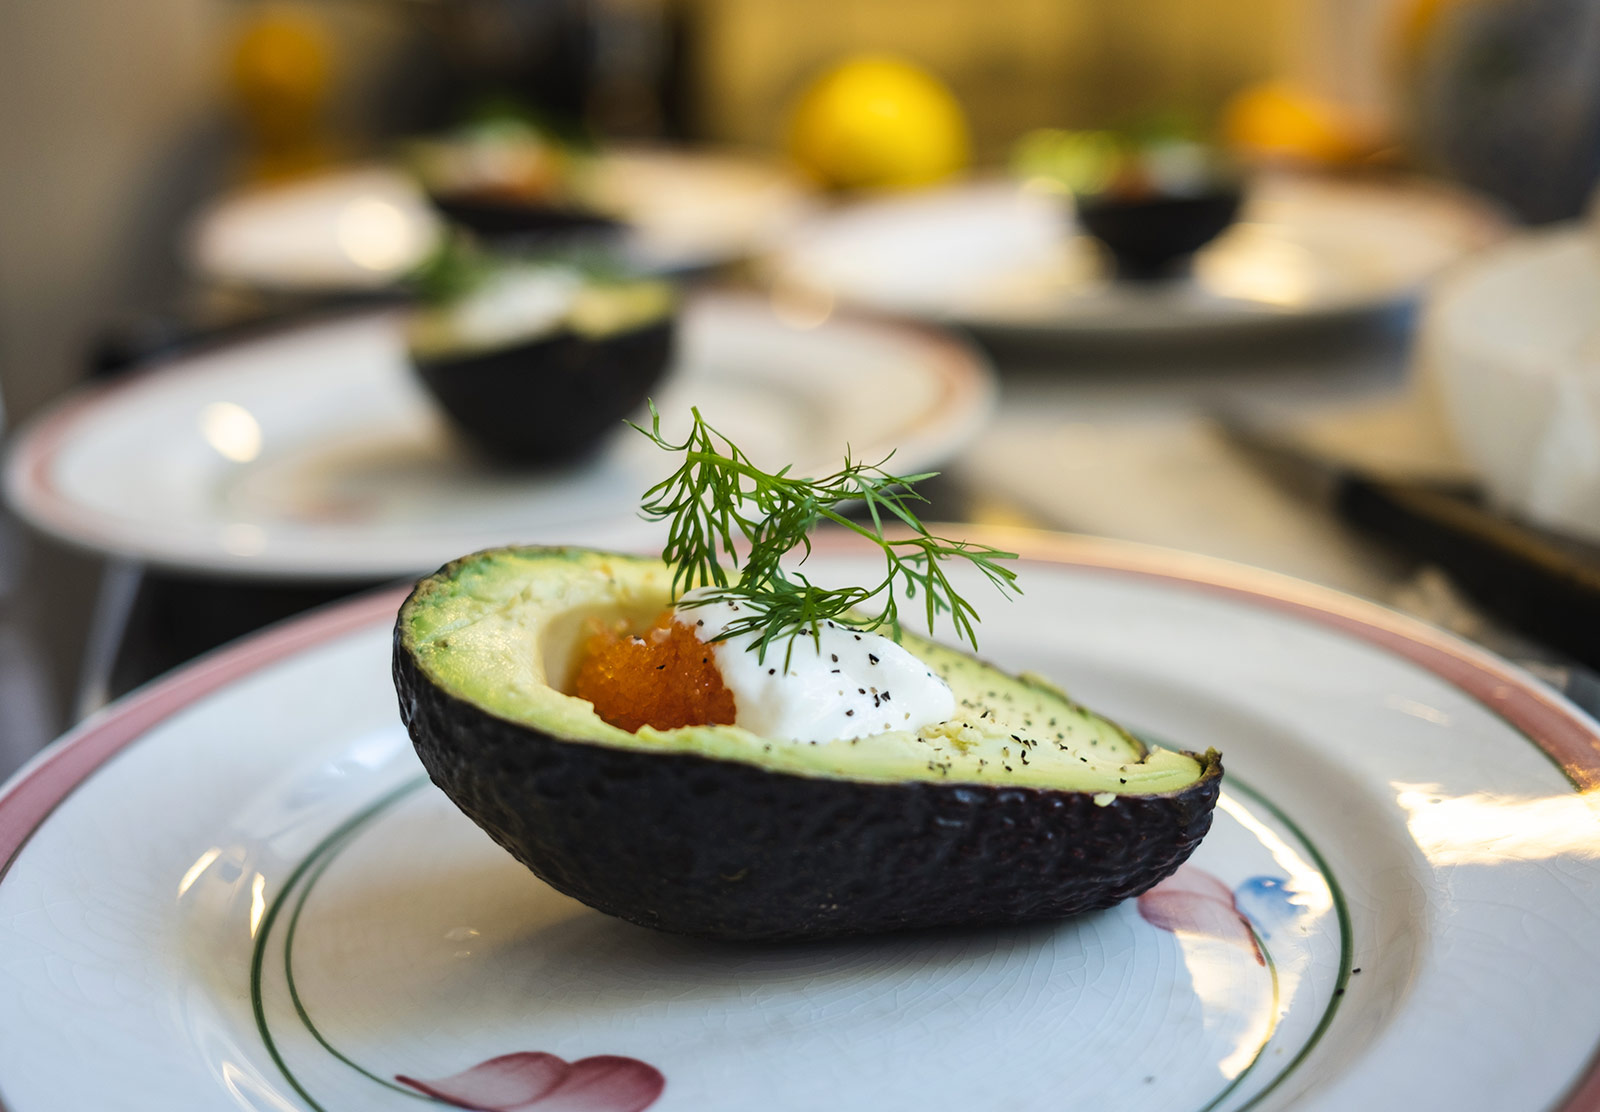 Dill topped avocado